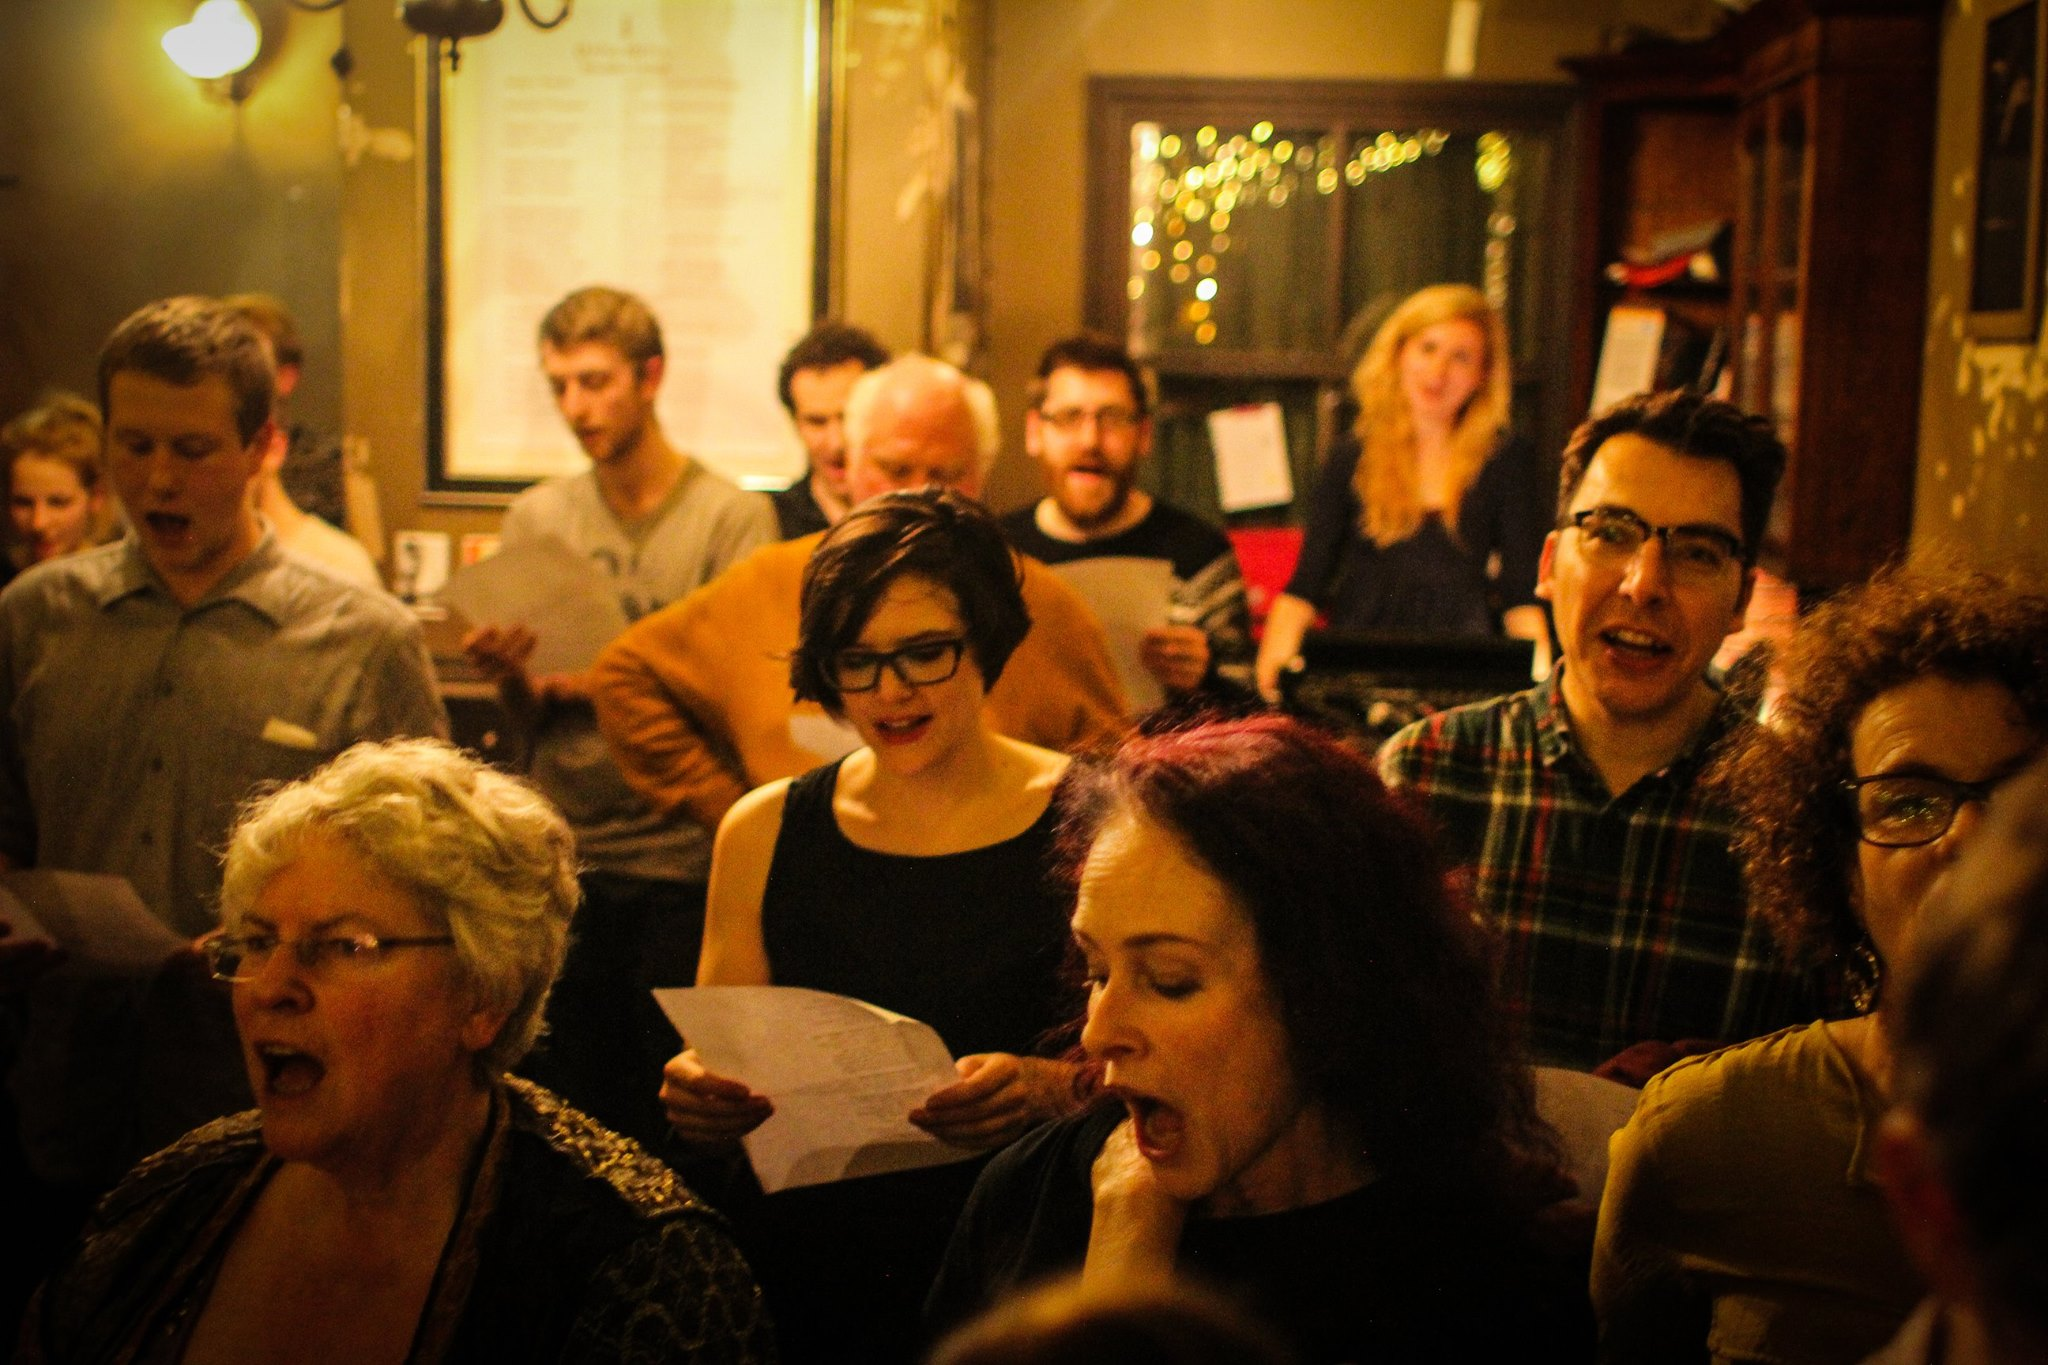 A group of people stand singing in a performance space in a pub holding hymn sheets